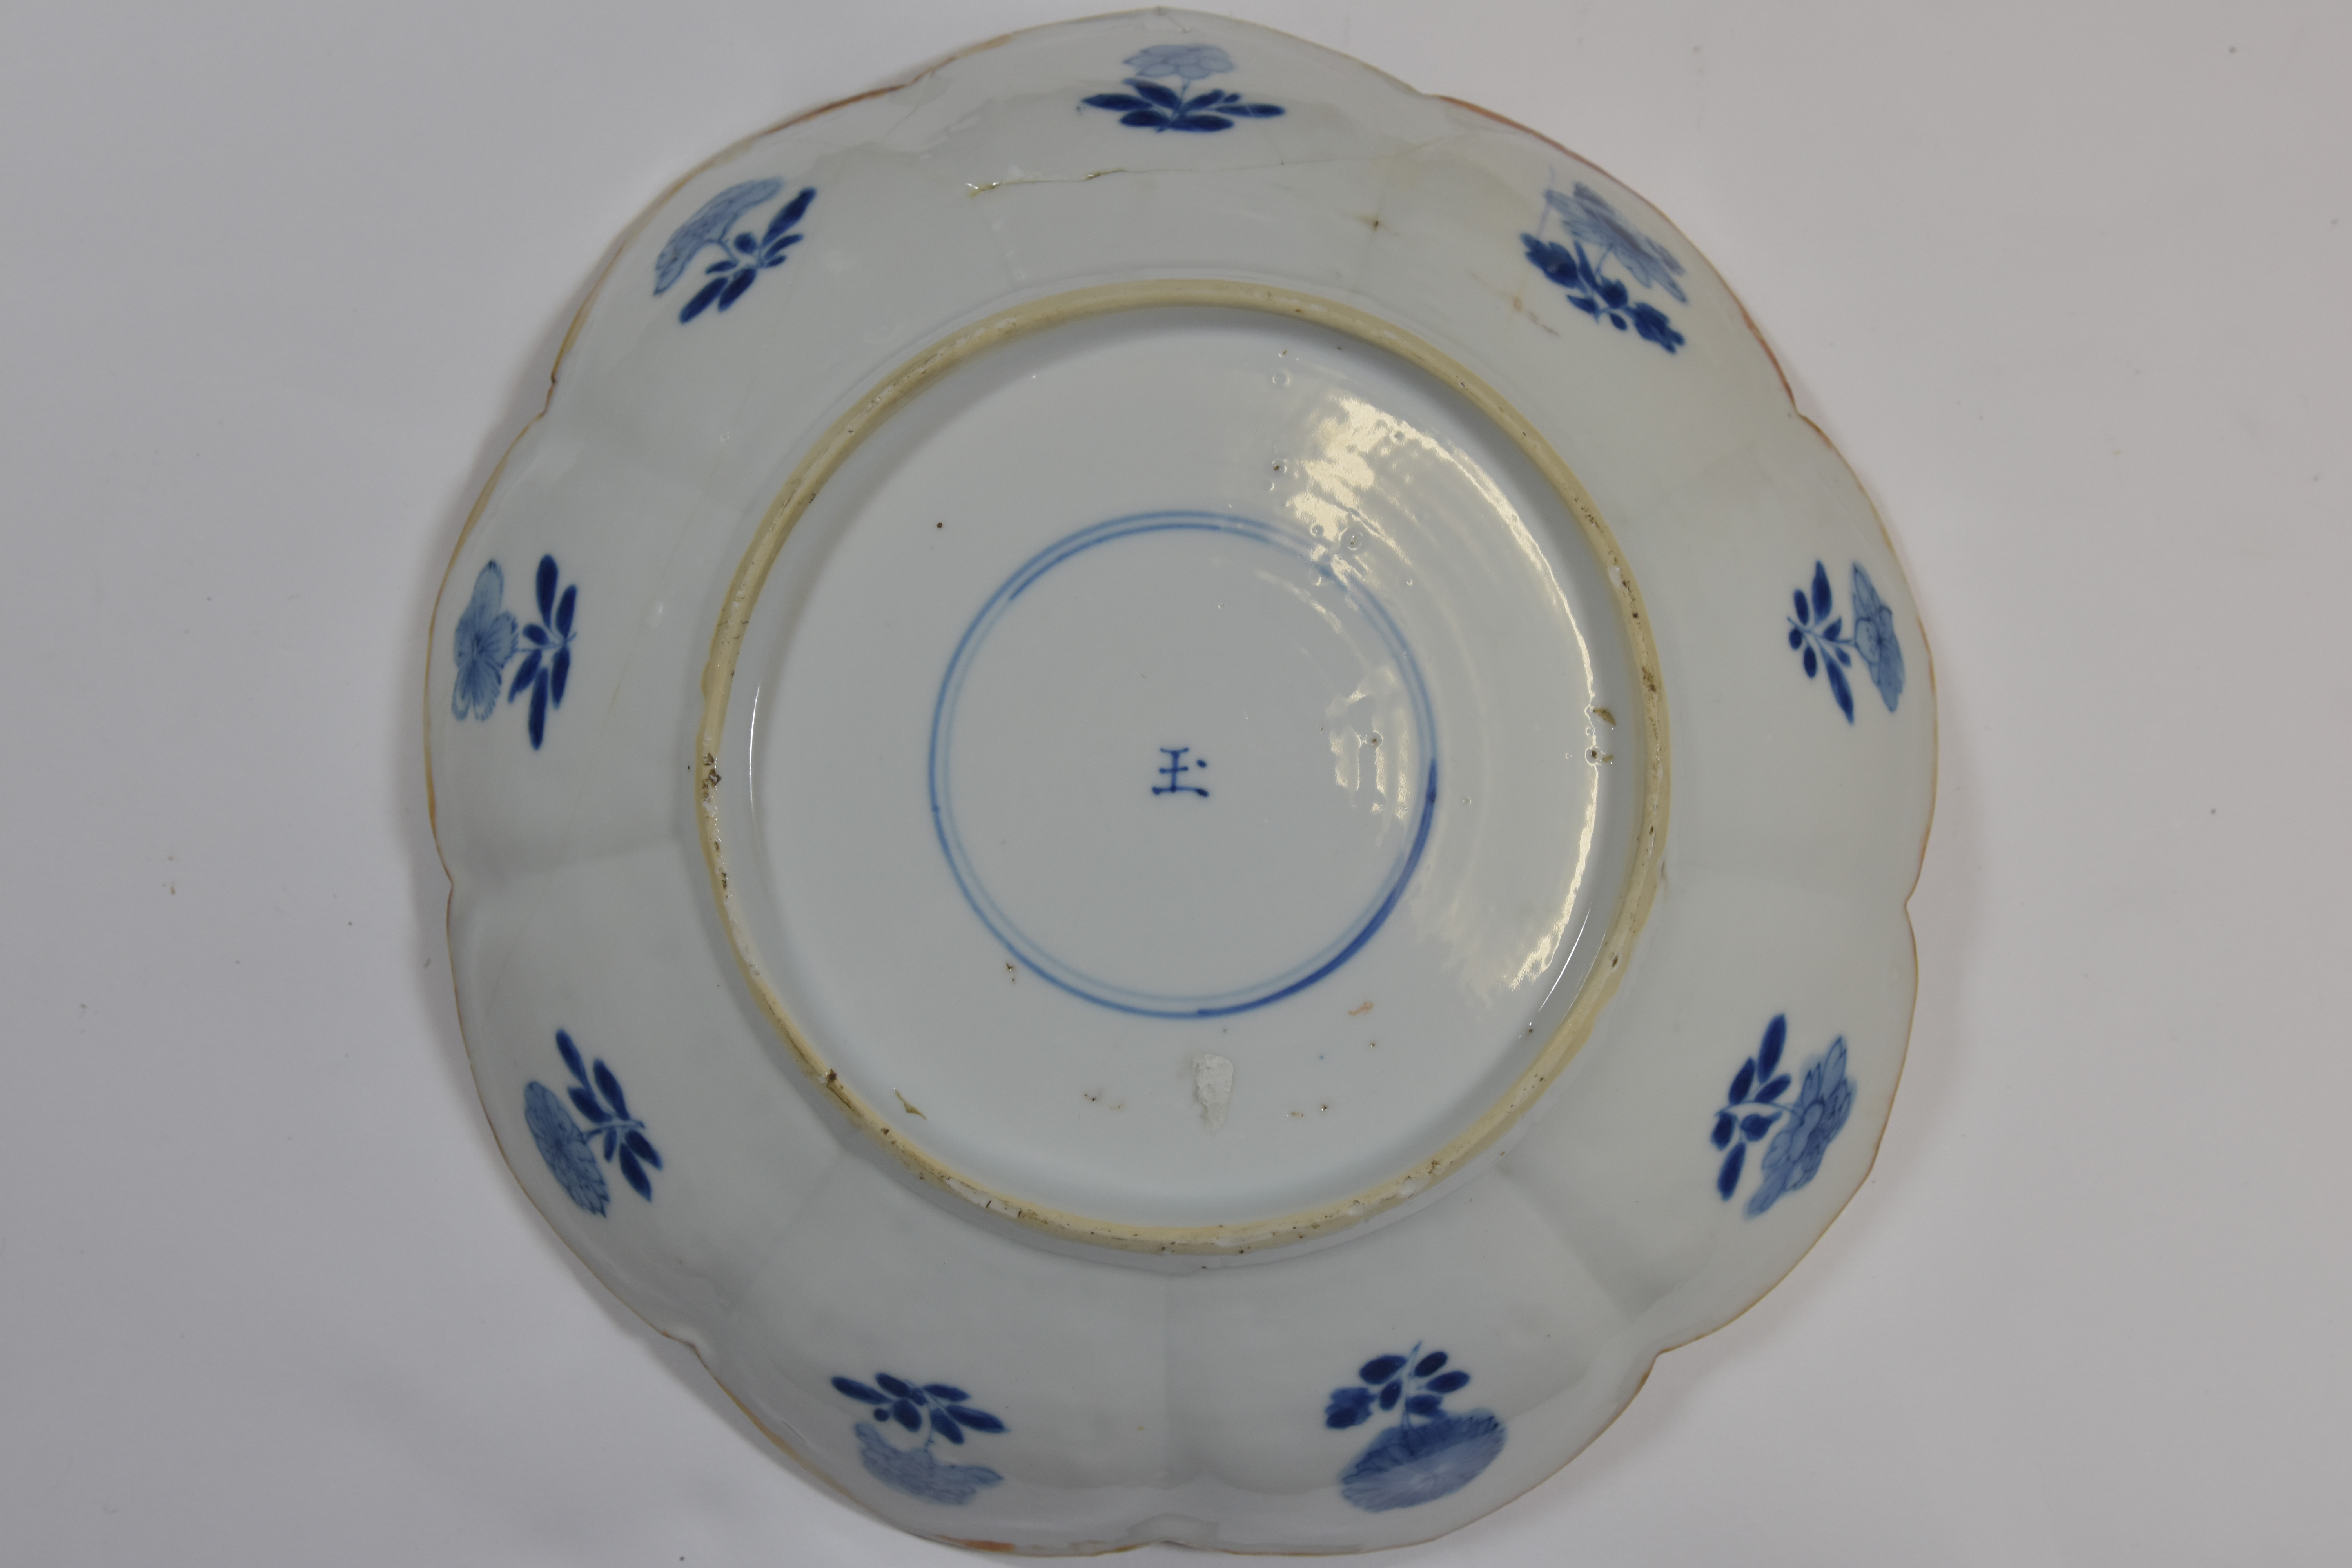 Lot 47 - A group of four blue and white dishes KangxiI period and later 15-23cm (4) 康熙時代或遲 青花碟共肆件